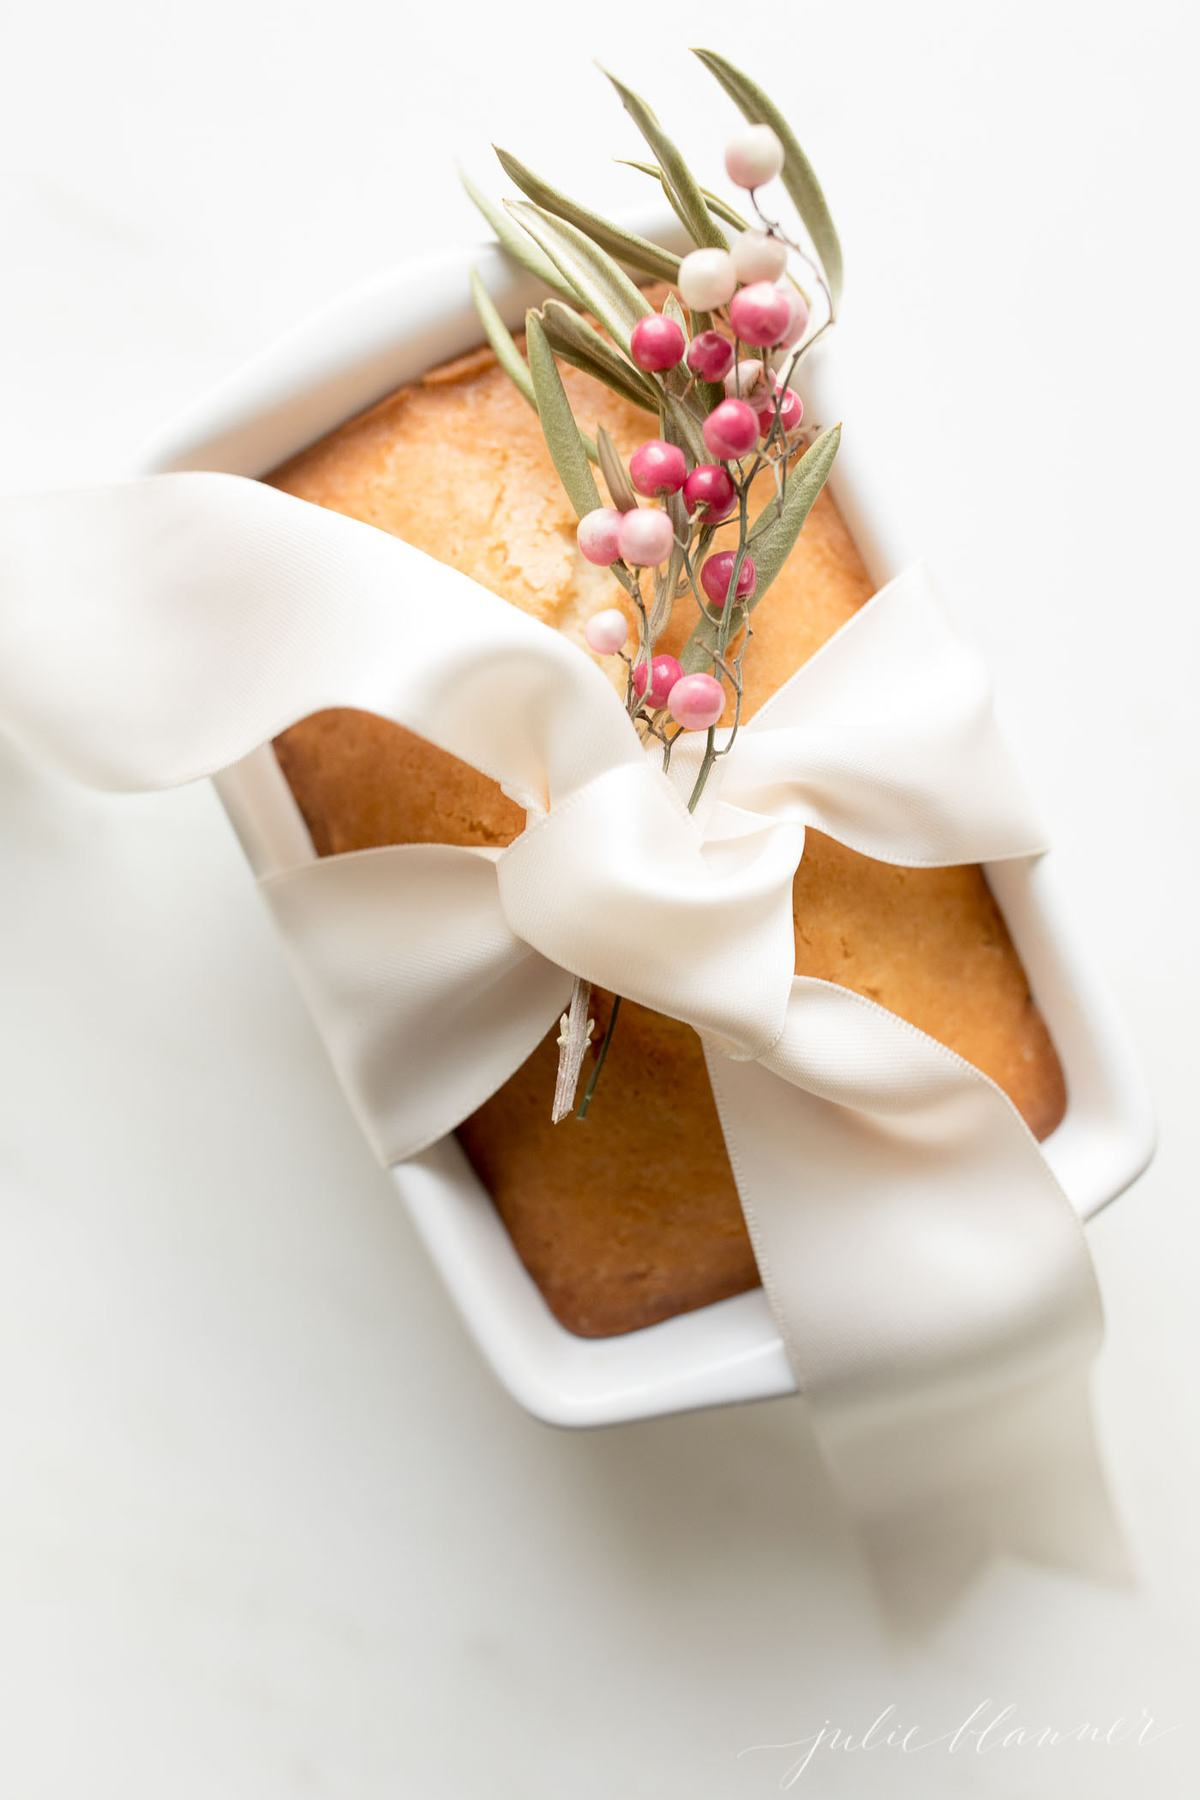 loaf almond bread wrapped with a ribbon and garnish